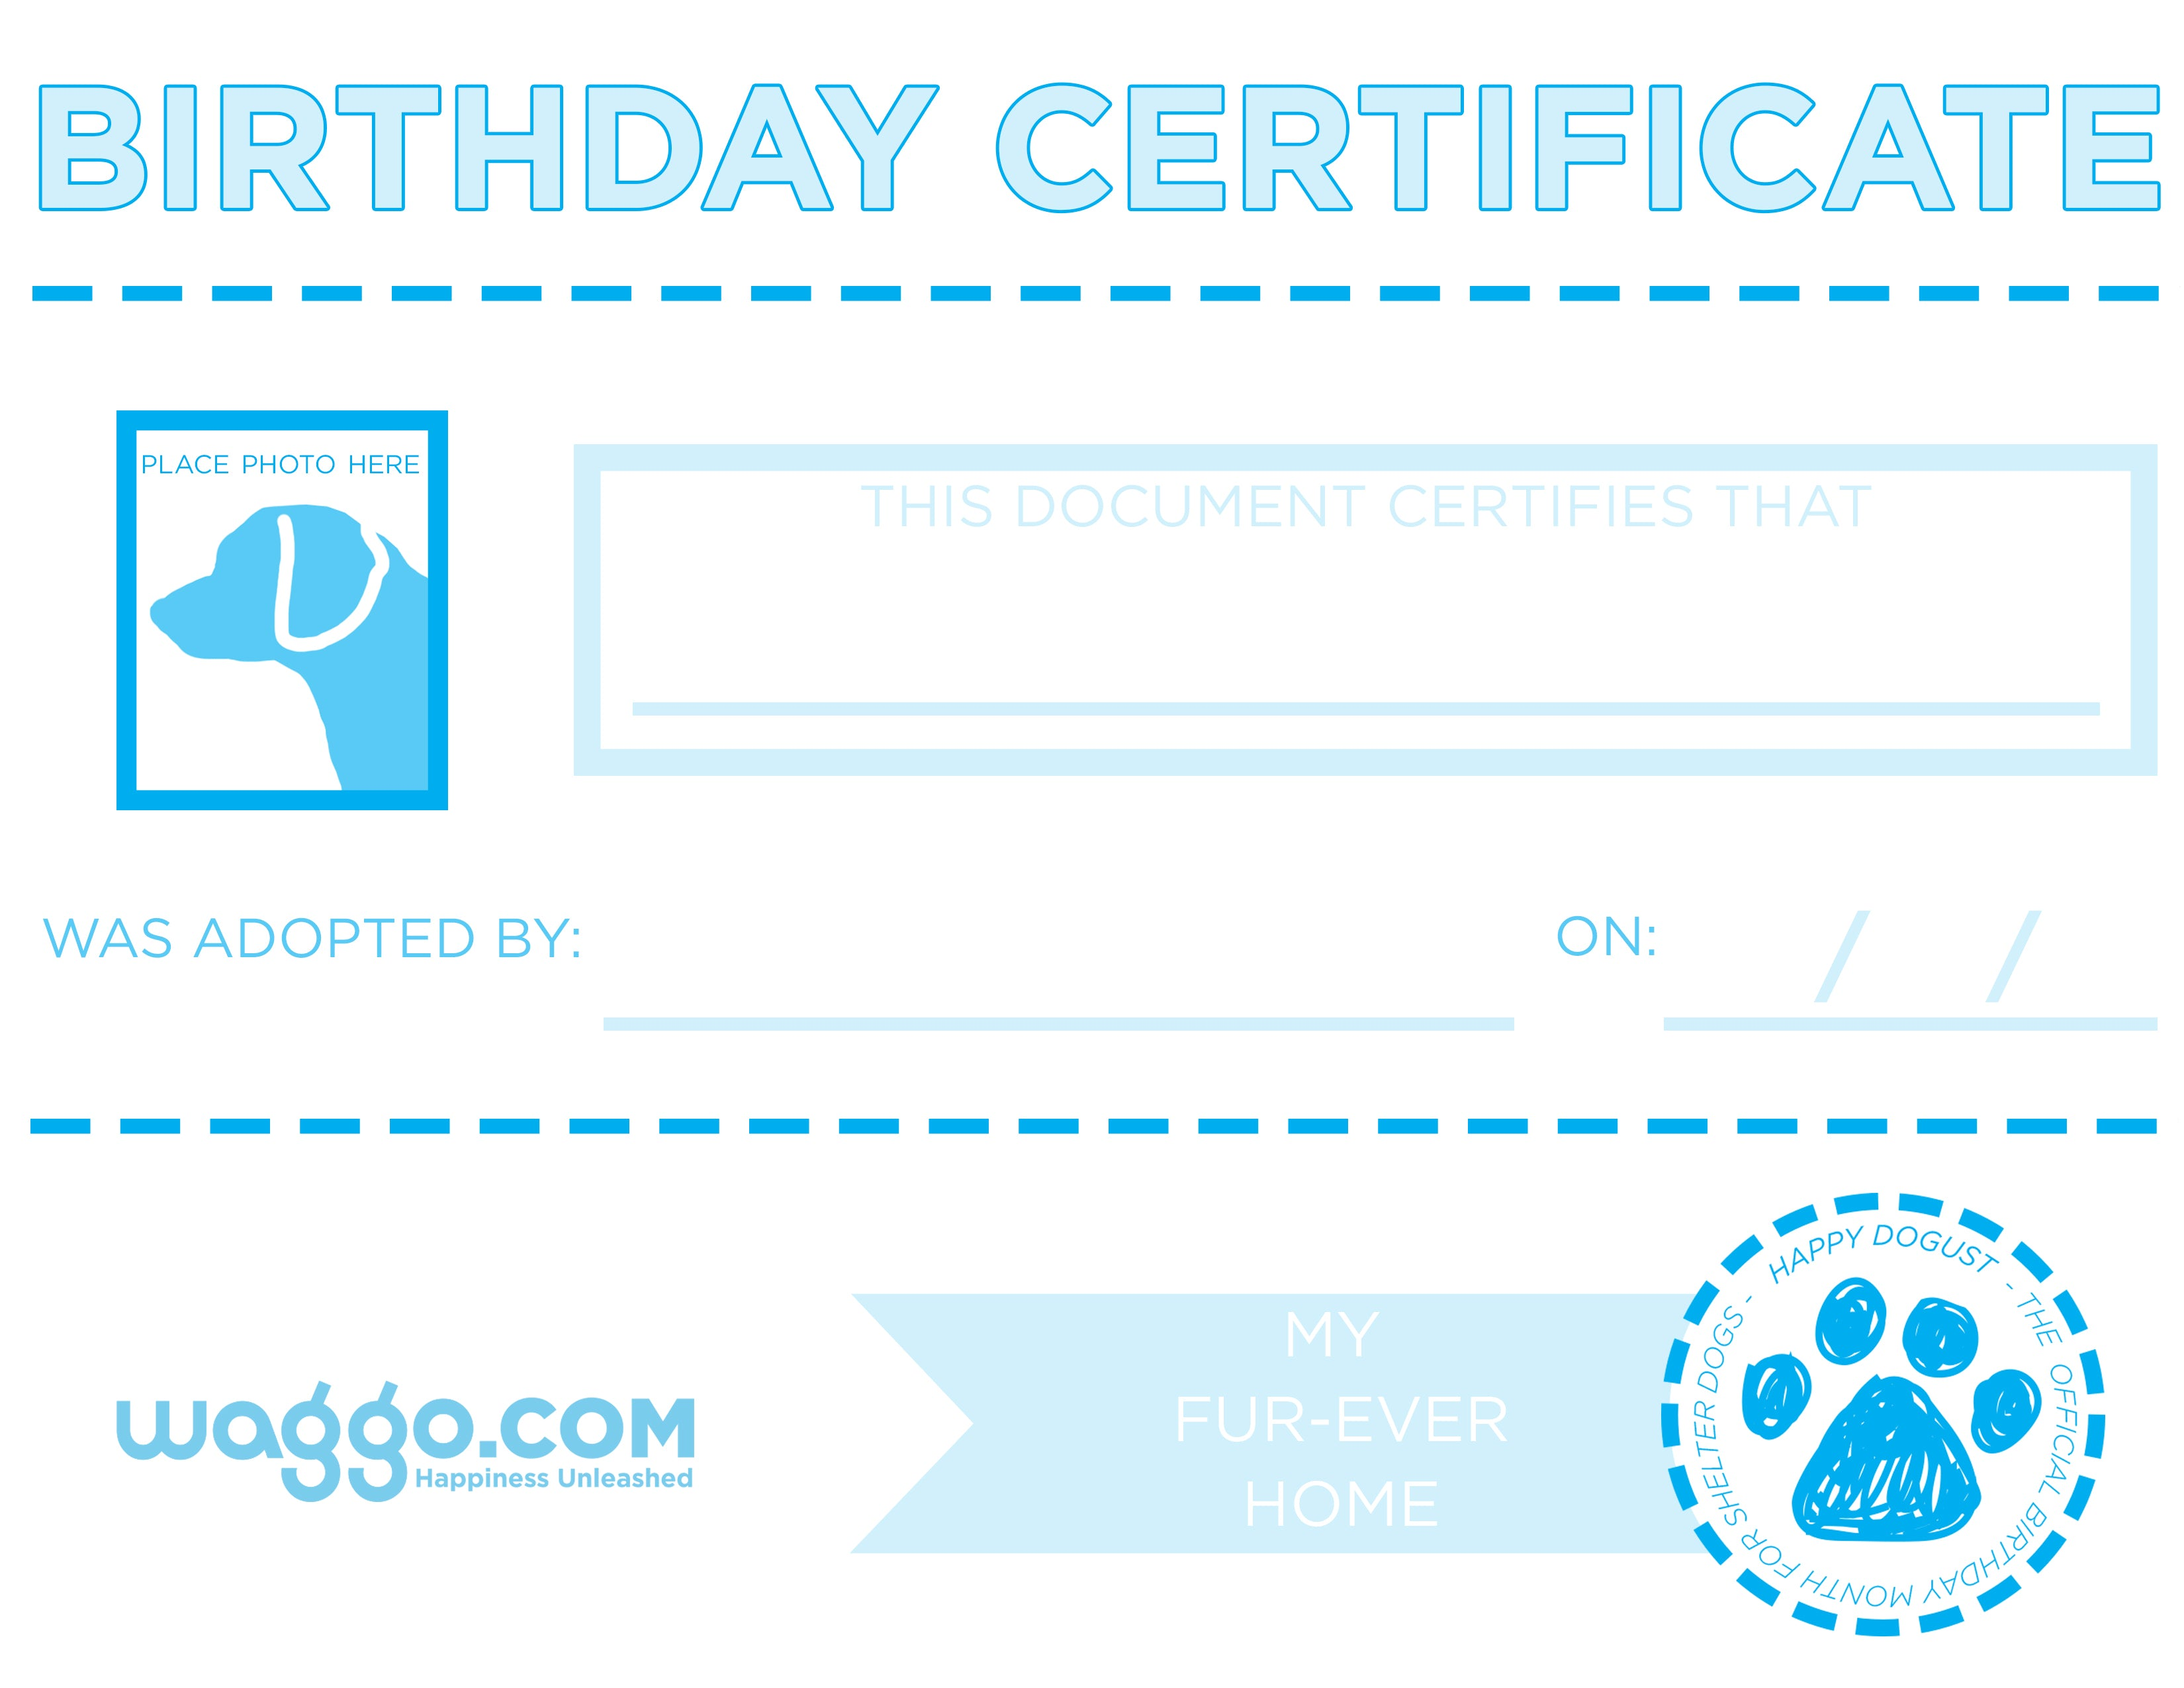 Happy dogust waggo blog animal refuge league of greater portland will receive a free gift compliments of waggo you can also download an adorable birth certificate for your aiddatafo Choice Image